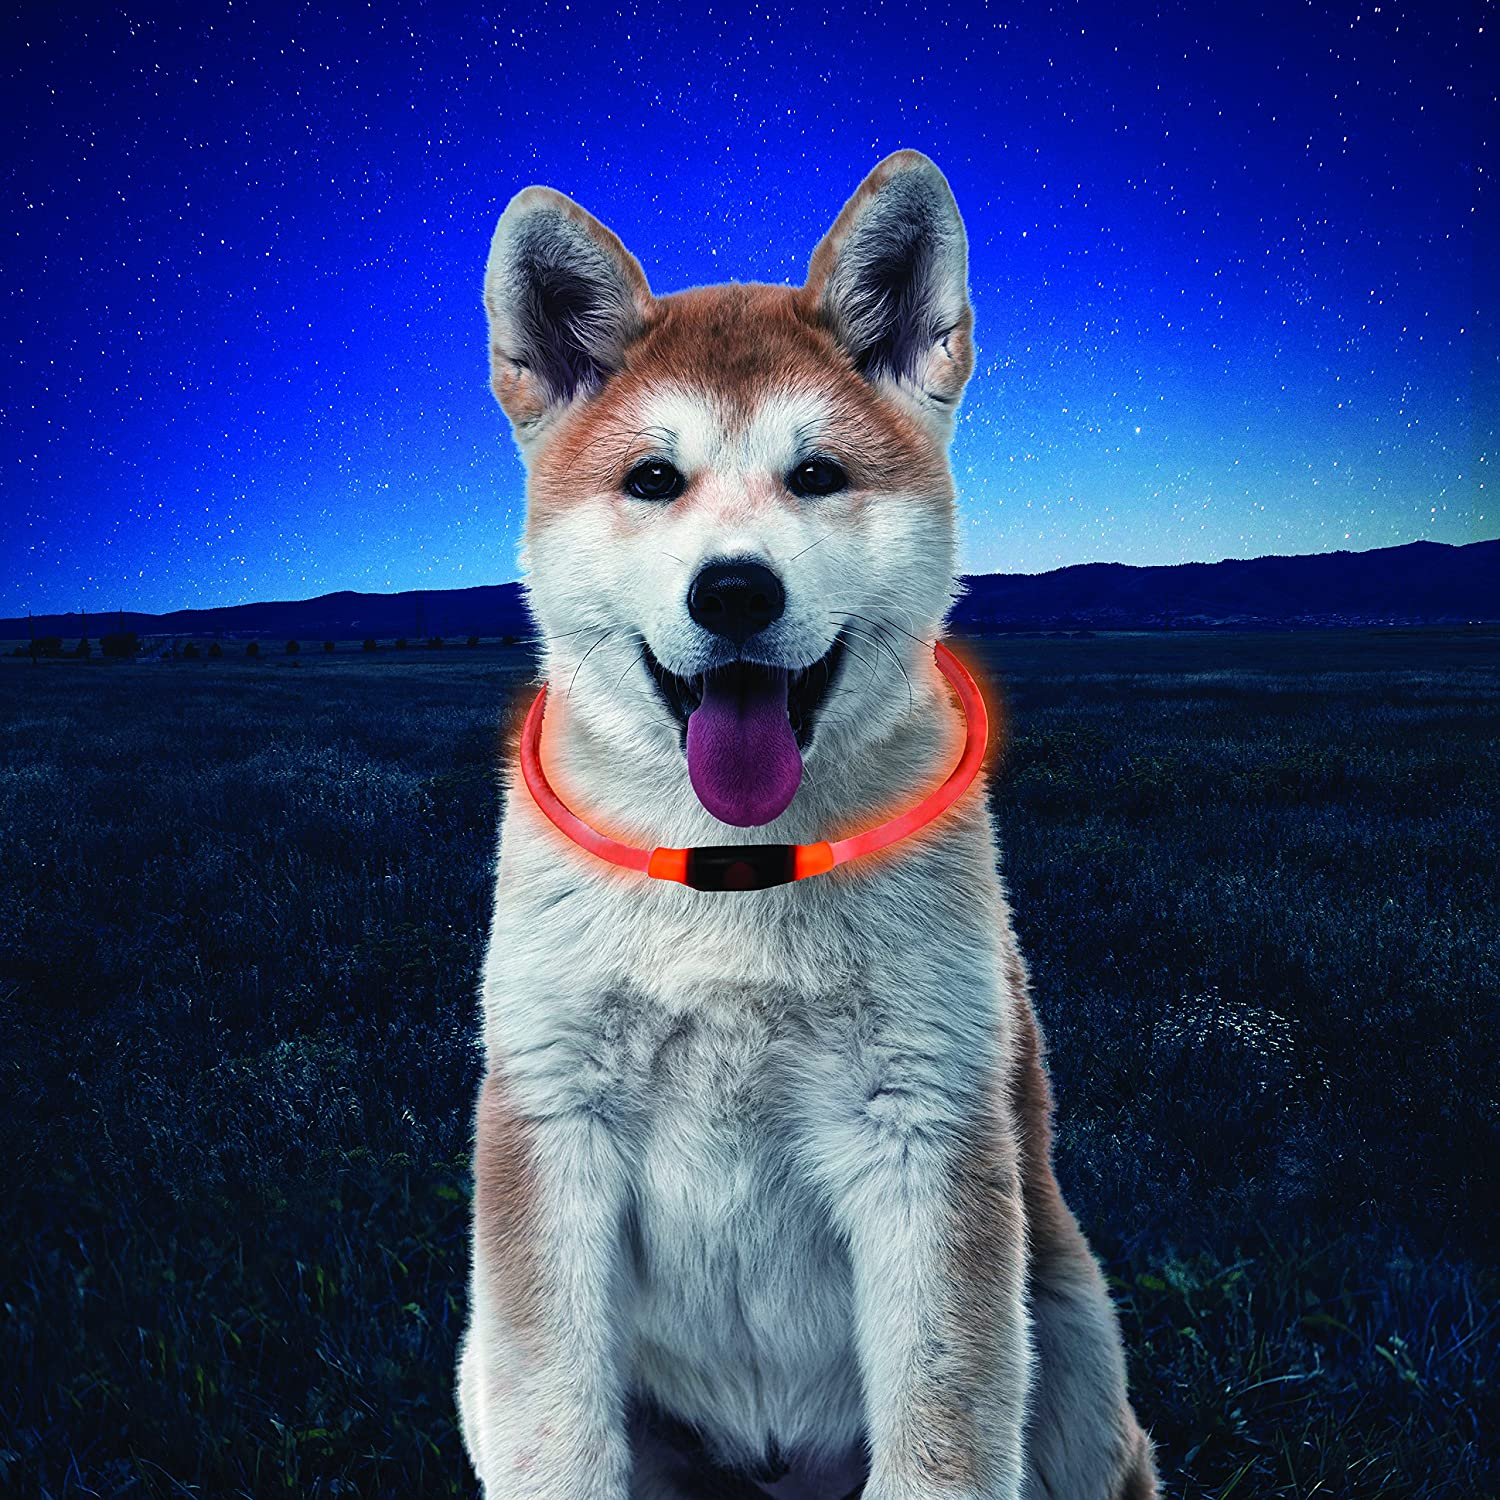 Dog wearing LED necklace in front of a night sky